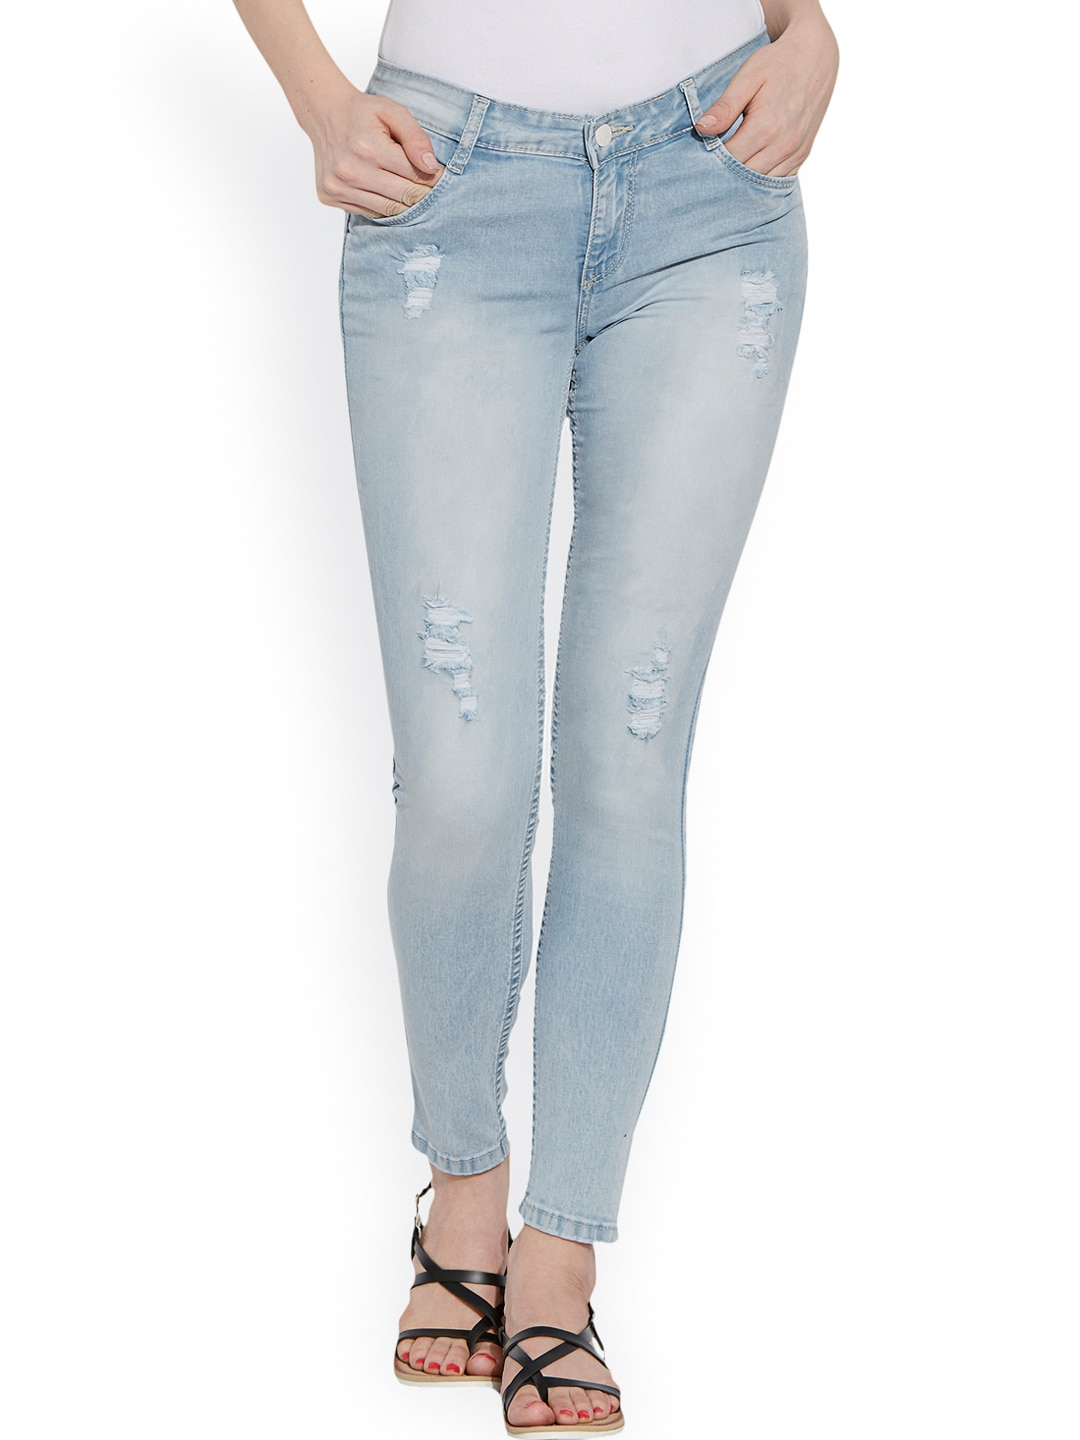 Kraus Jeans Women Blue Skinny Fit Mid-Rise Low Distress Jeans image